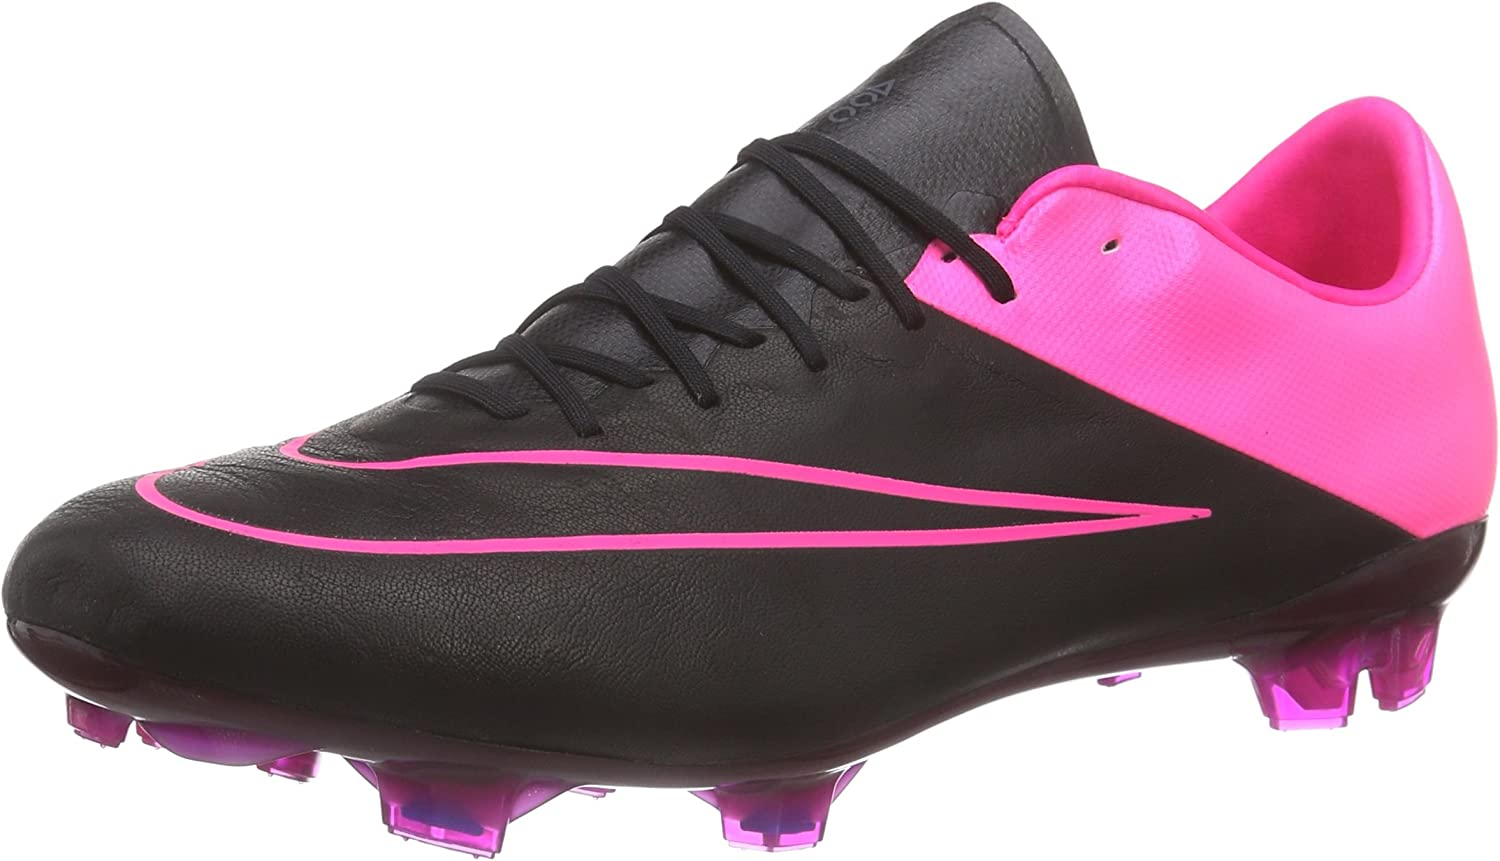 valores Haciendo Vendedor  Amazon.com | Nike Mercurial Vapor X Leather Firm Ground [Black/Hyper  Pink/Black] (6.5) | Soccer